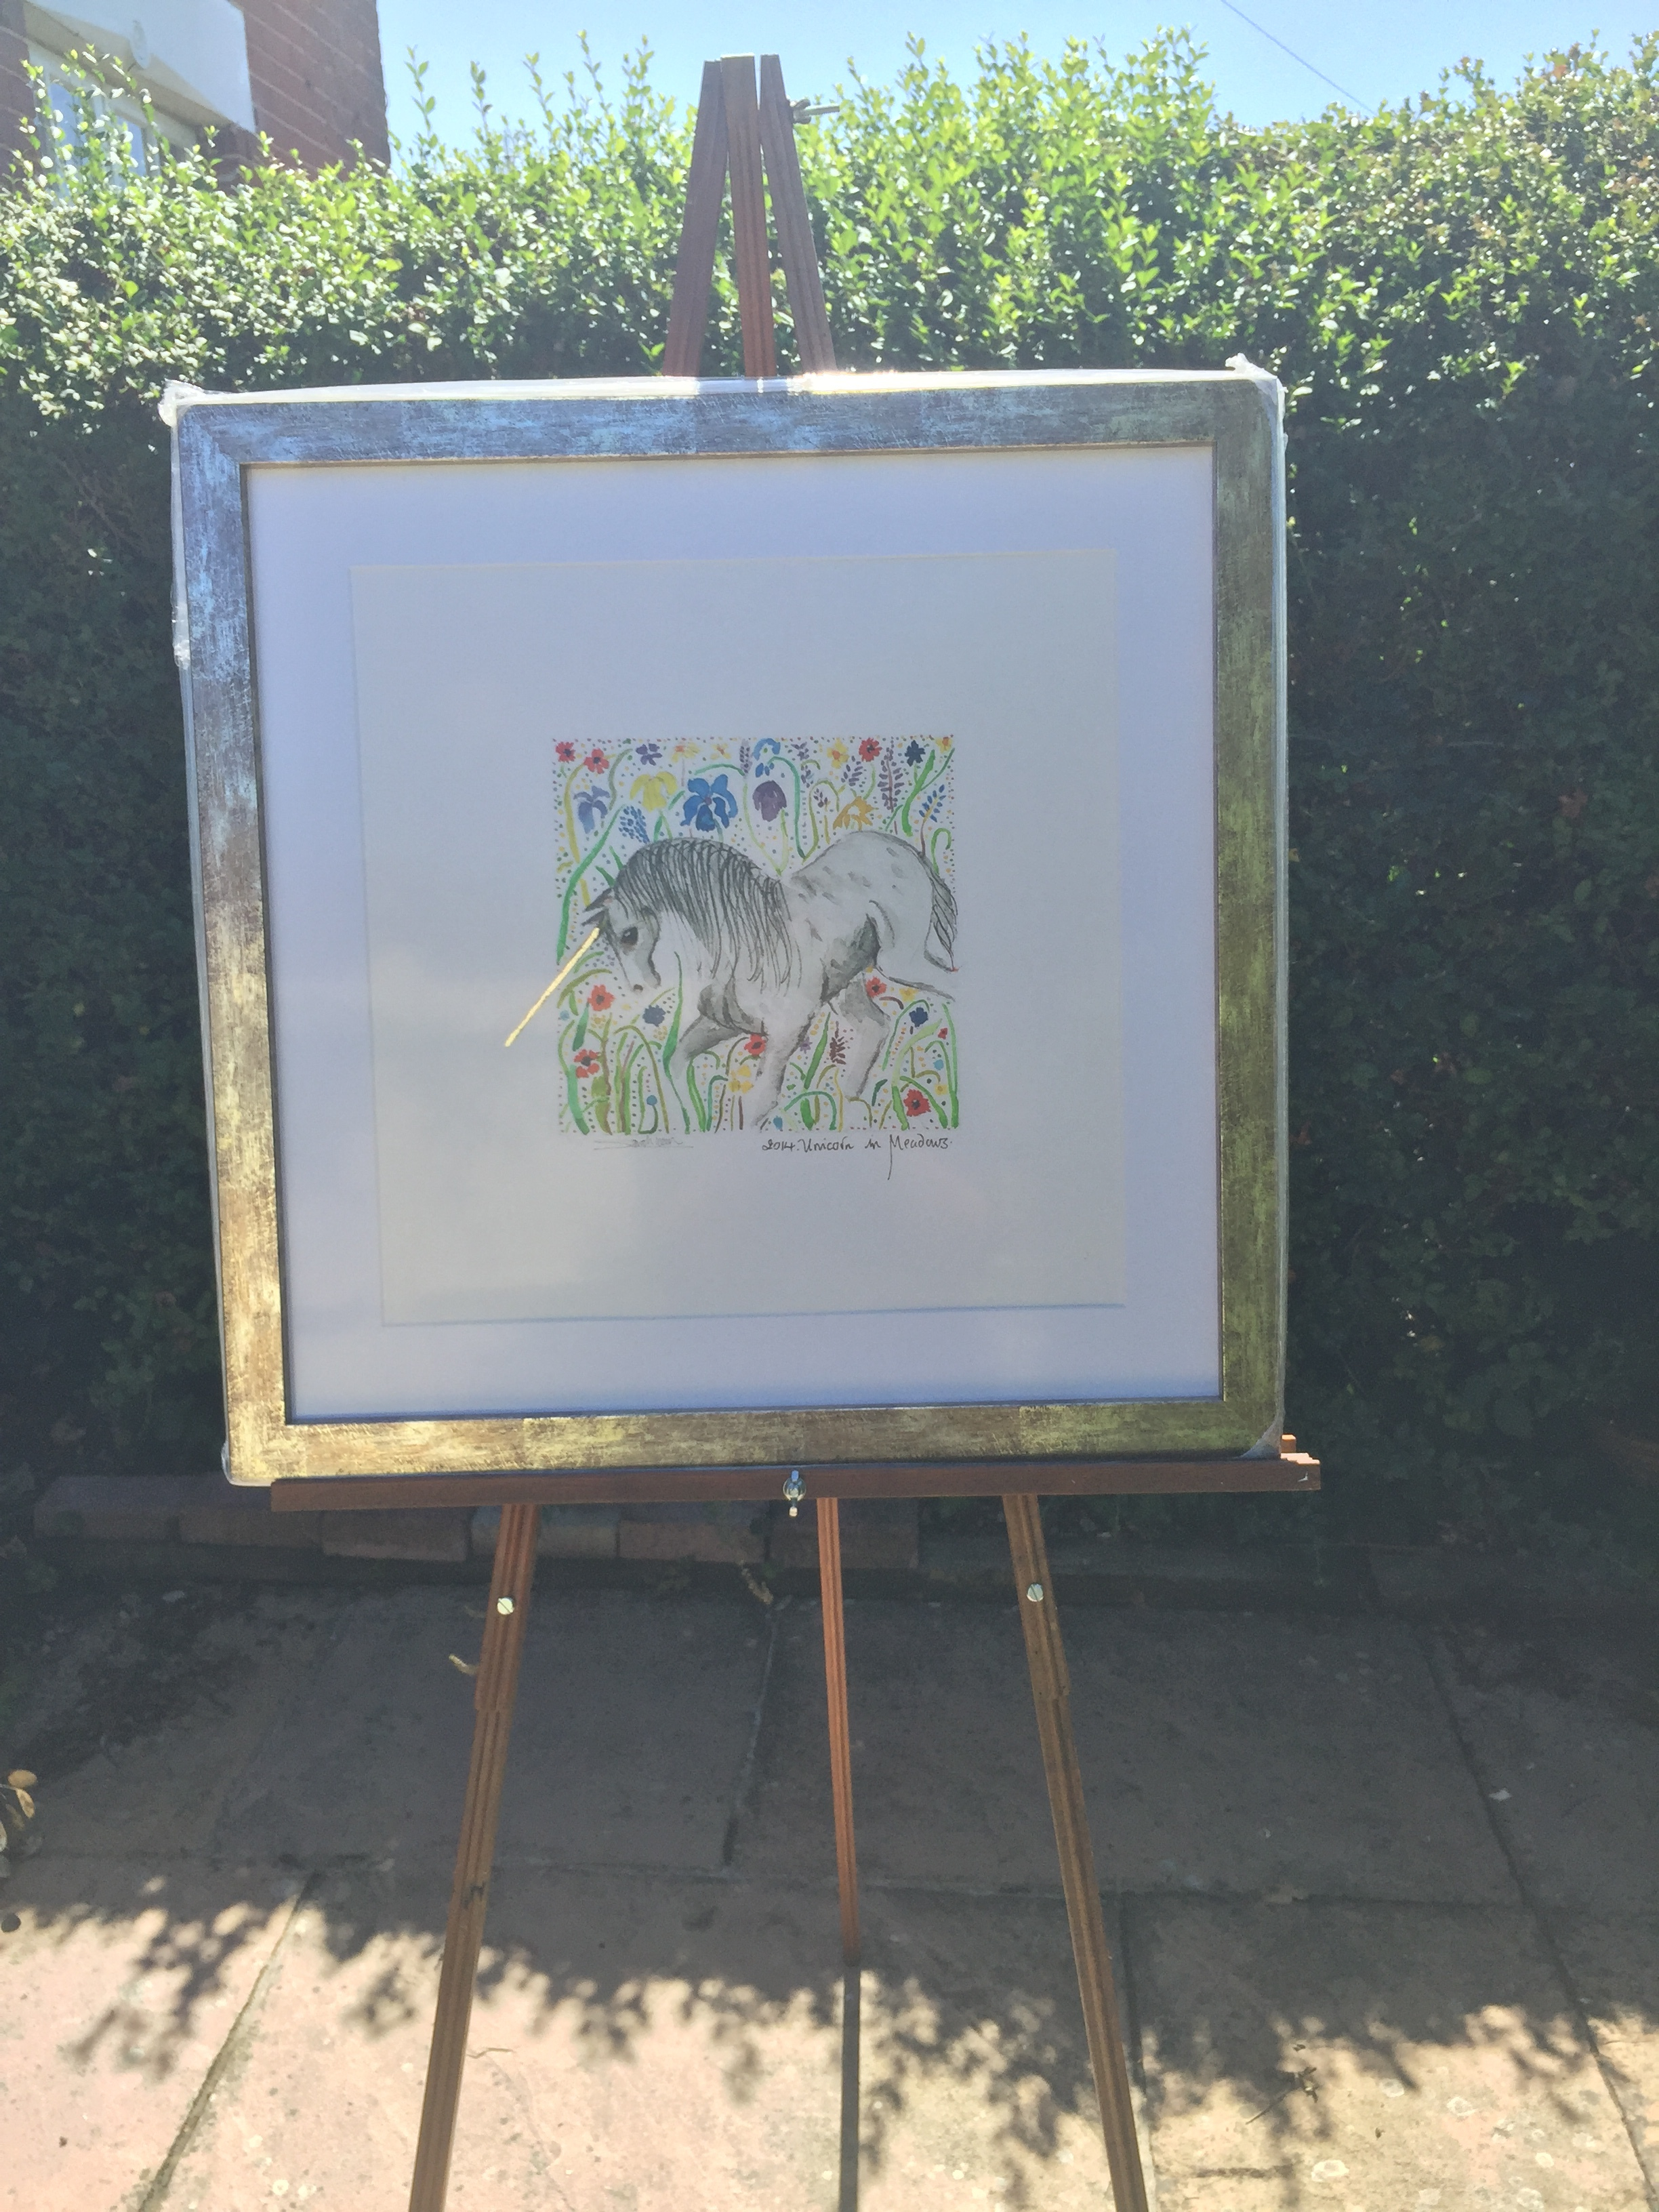 Framed edition of Unicorn Print. In full sunshine and gold frame, the light catches his horn that is finished in gold leaf.